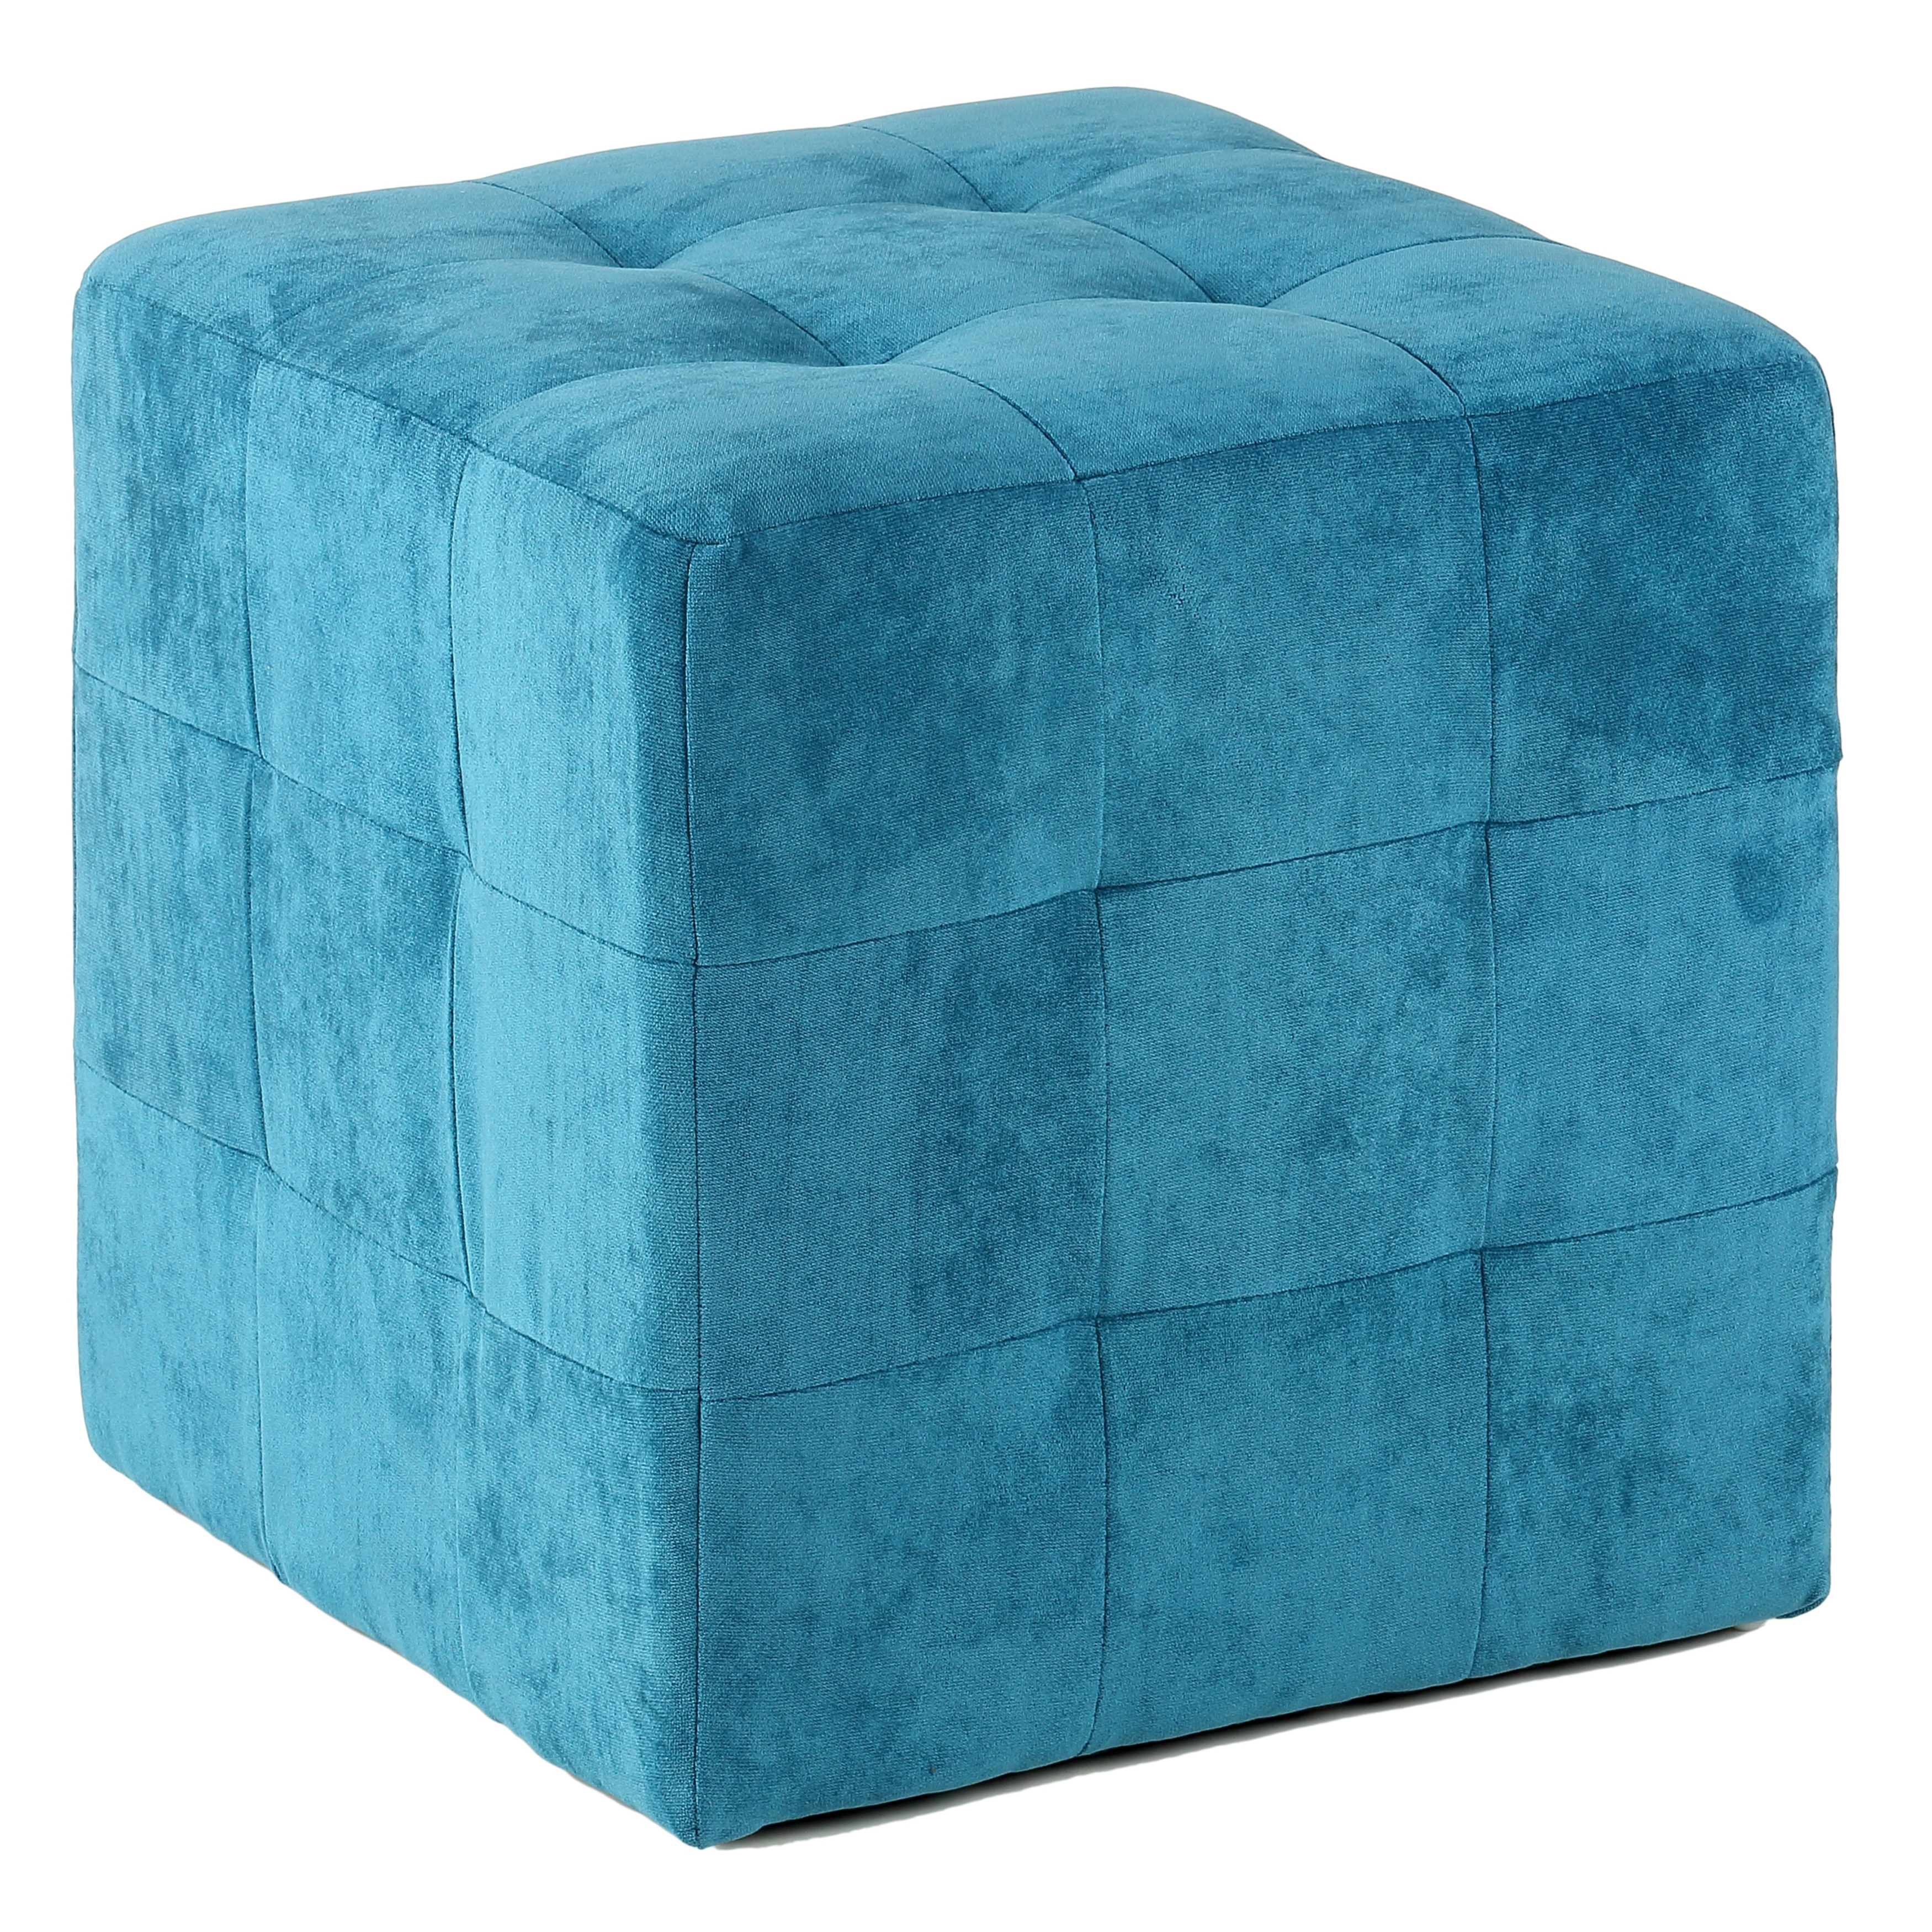 Shop Cortesi Home Blue Fabric Upholstered Cube Ottoman